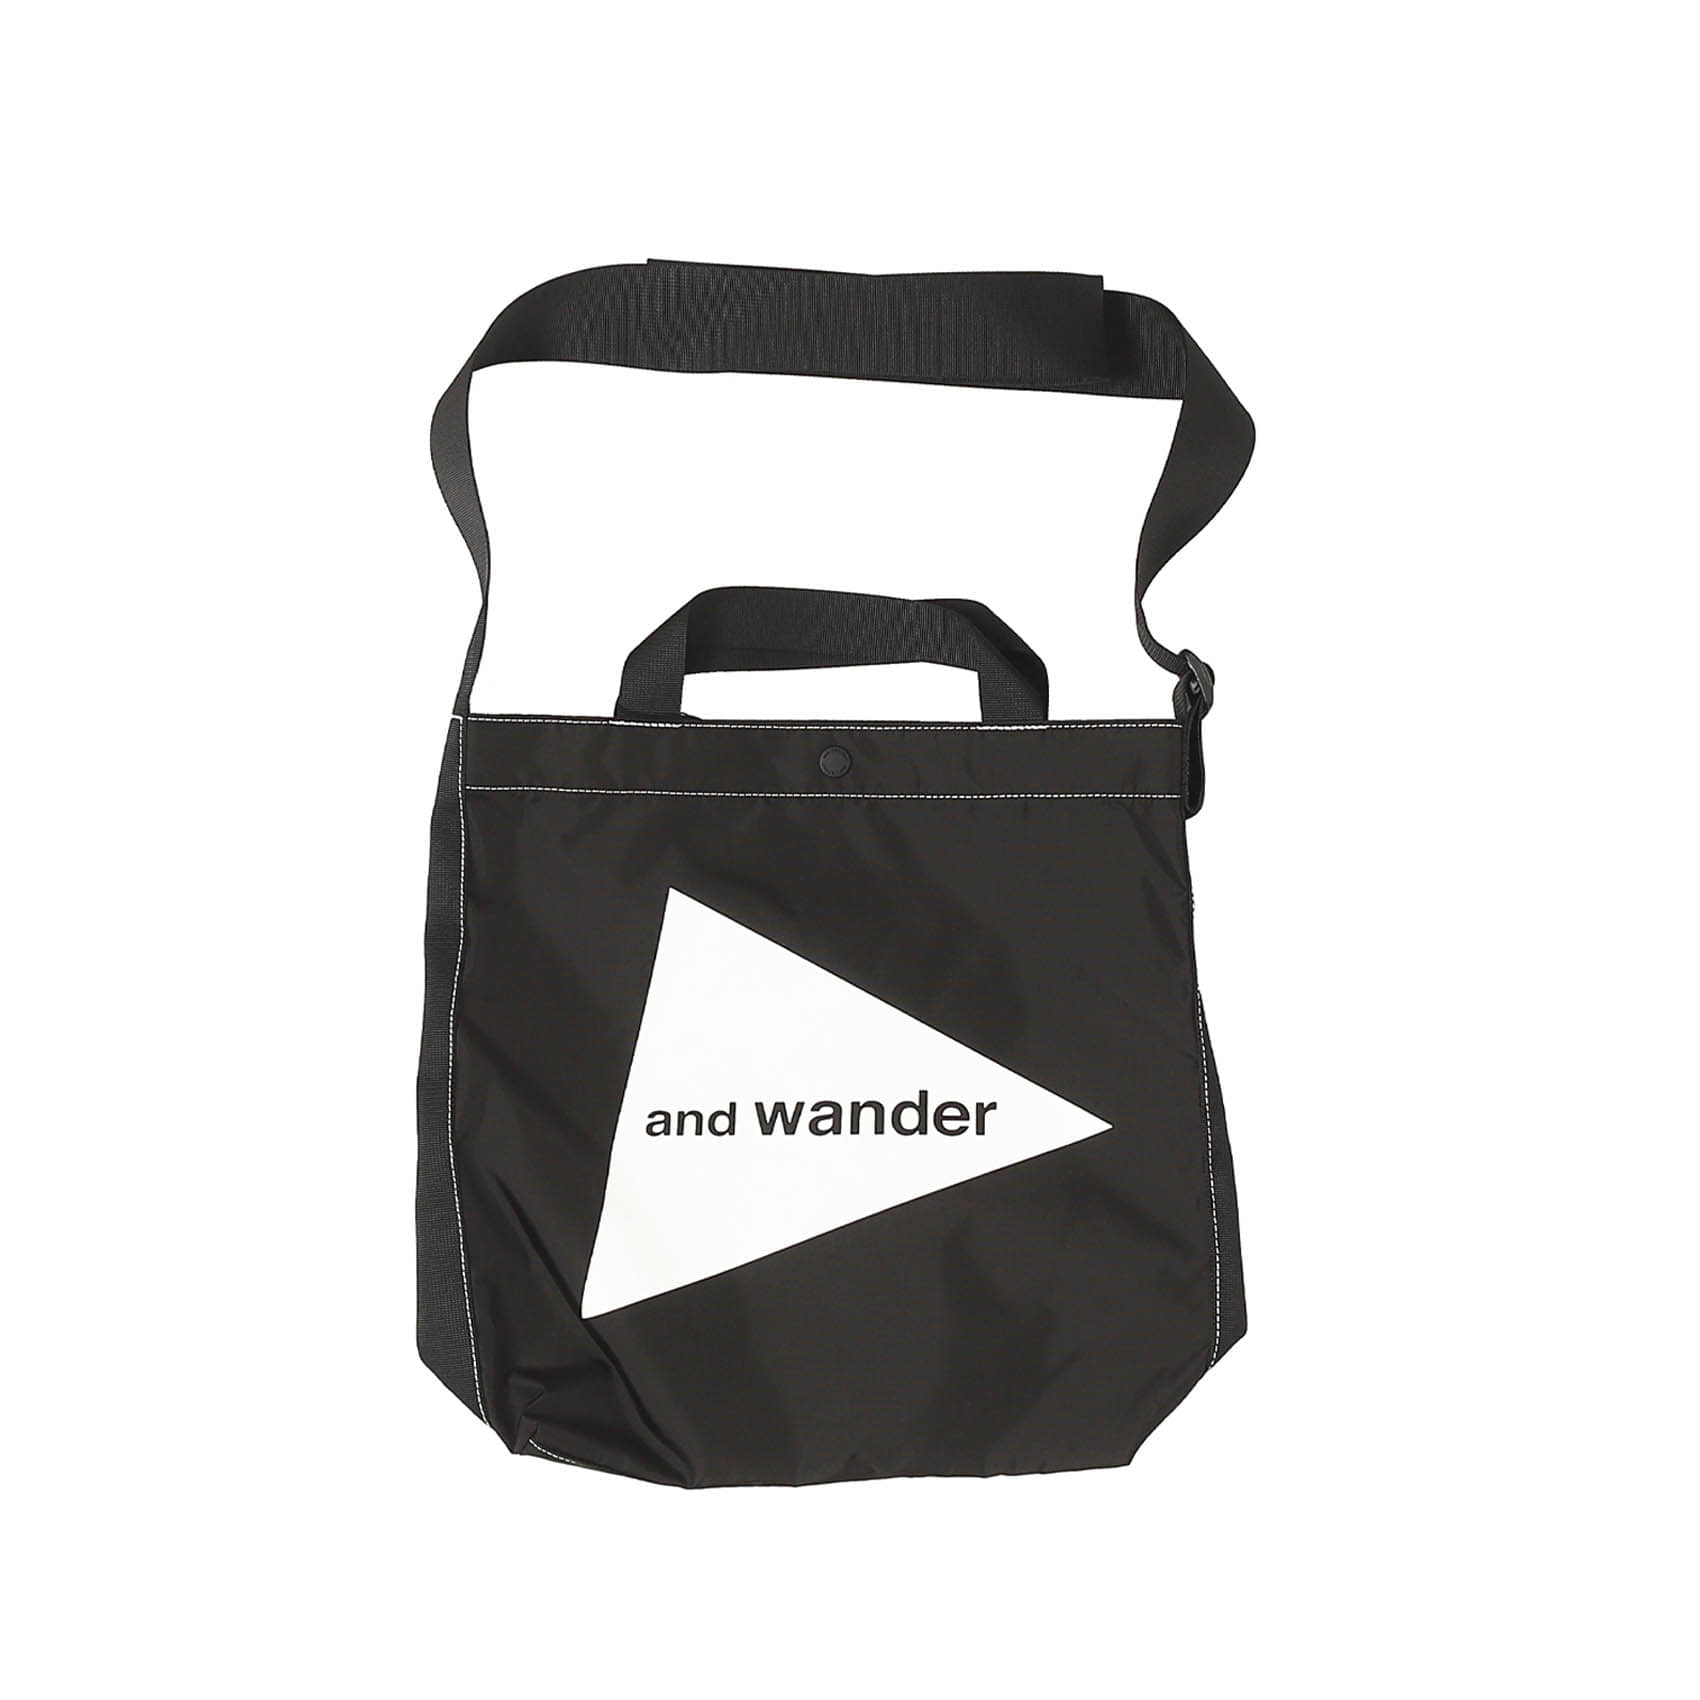 CORDURA LOGO TOTE BAG MEDIUM - BLACK